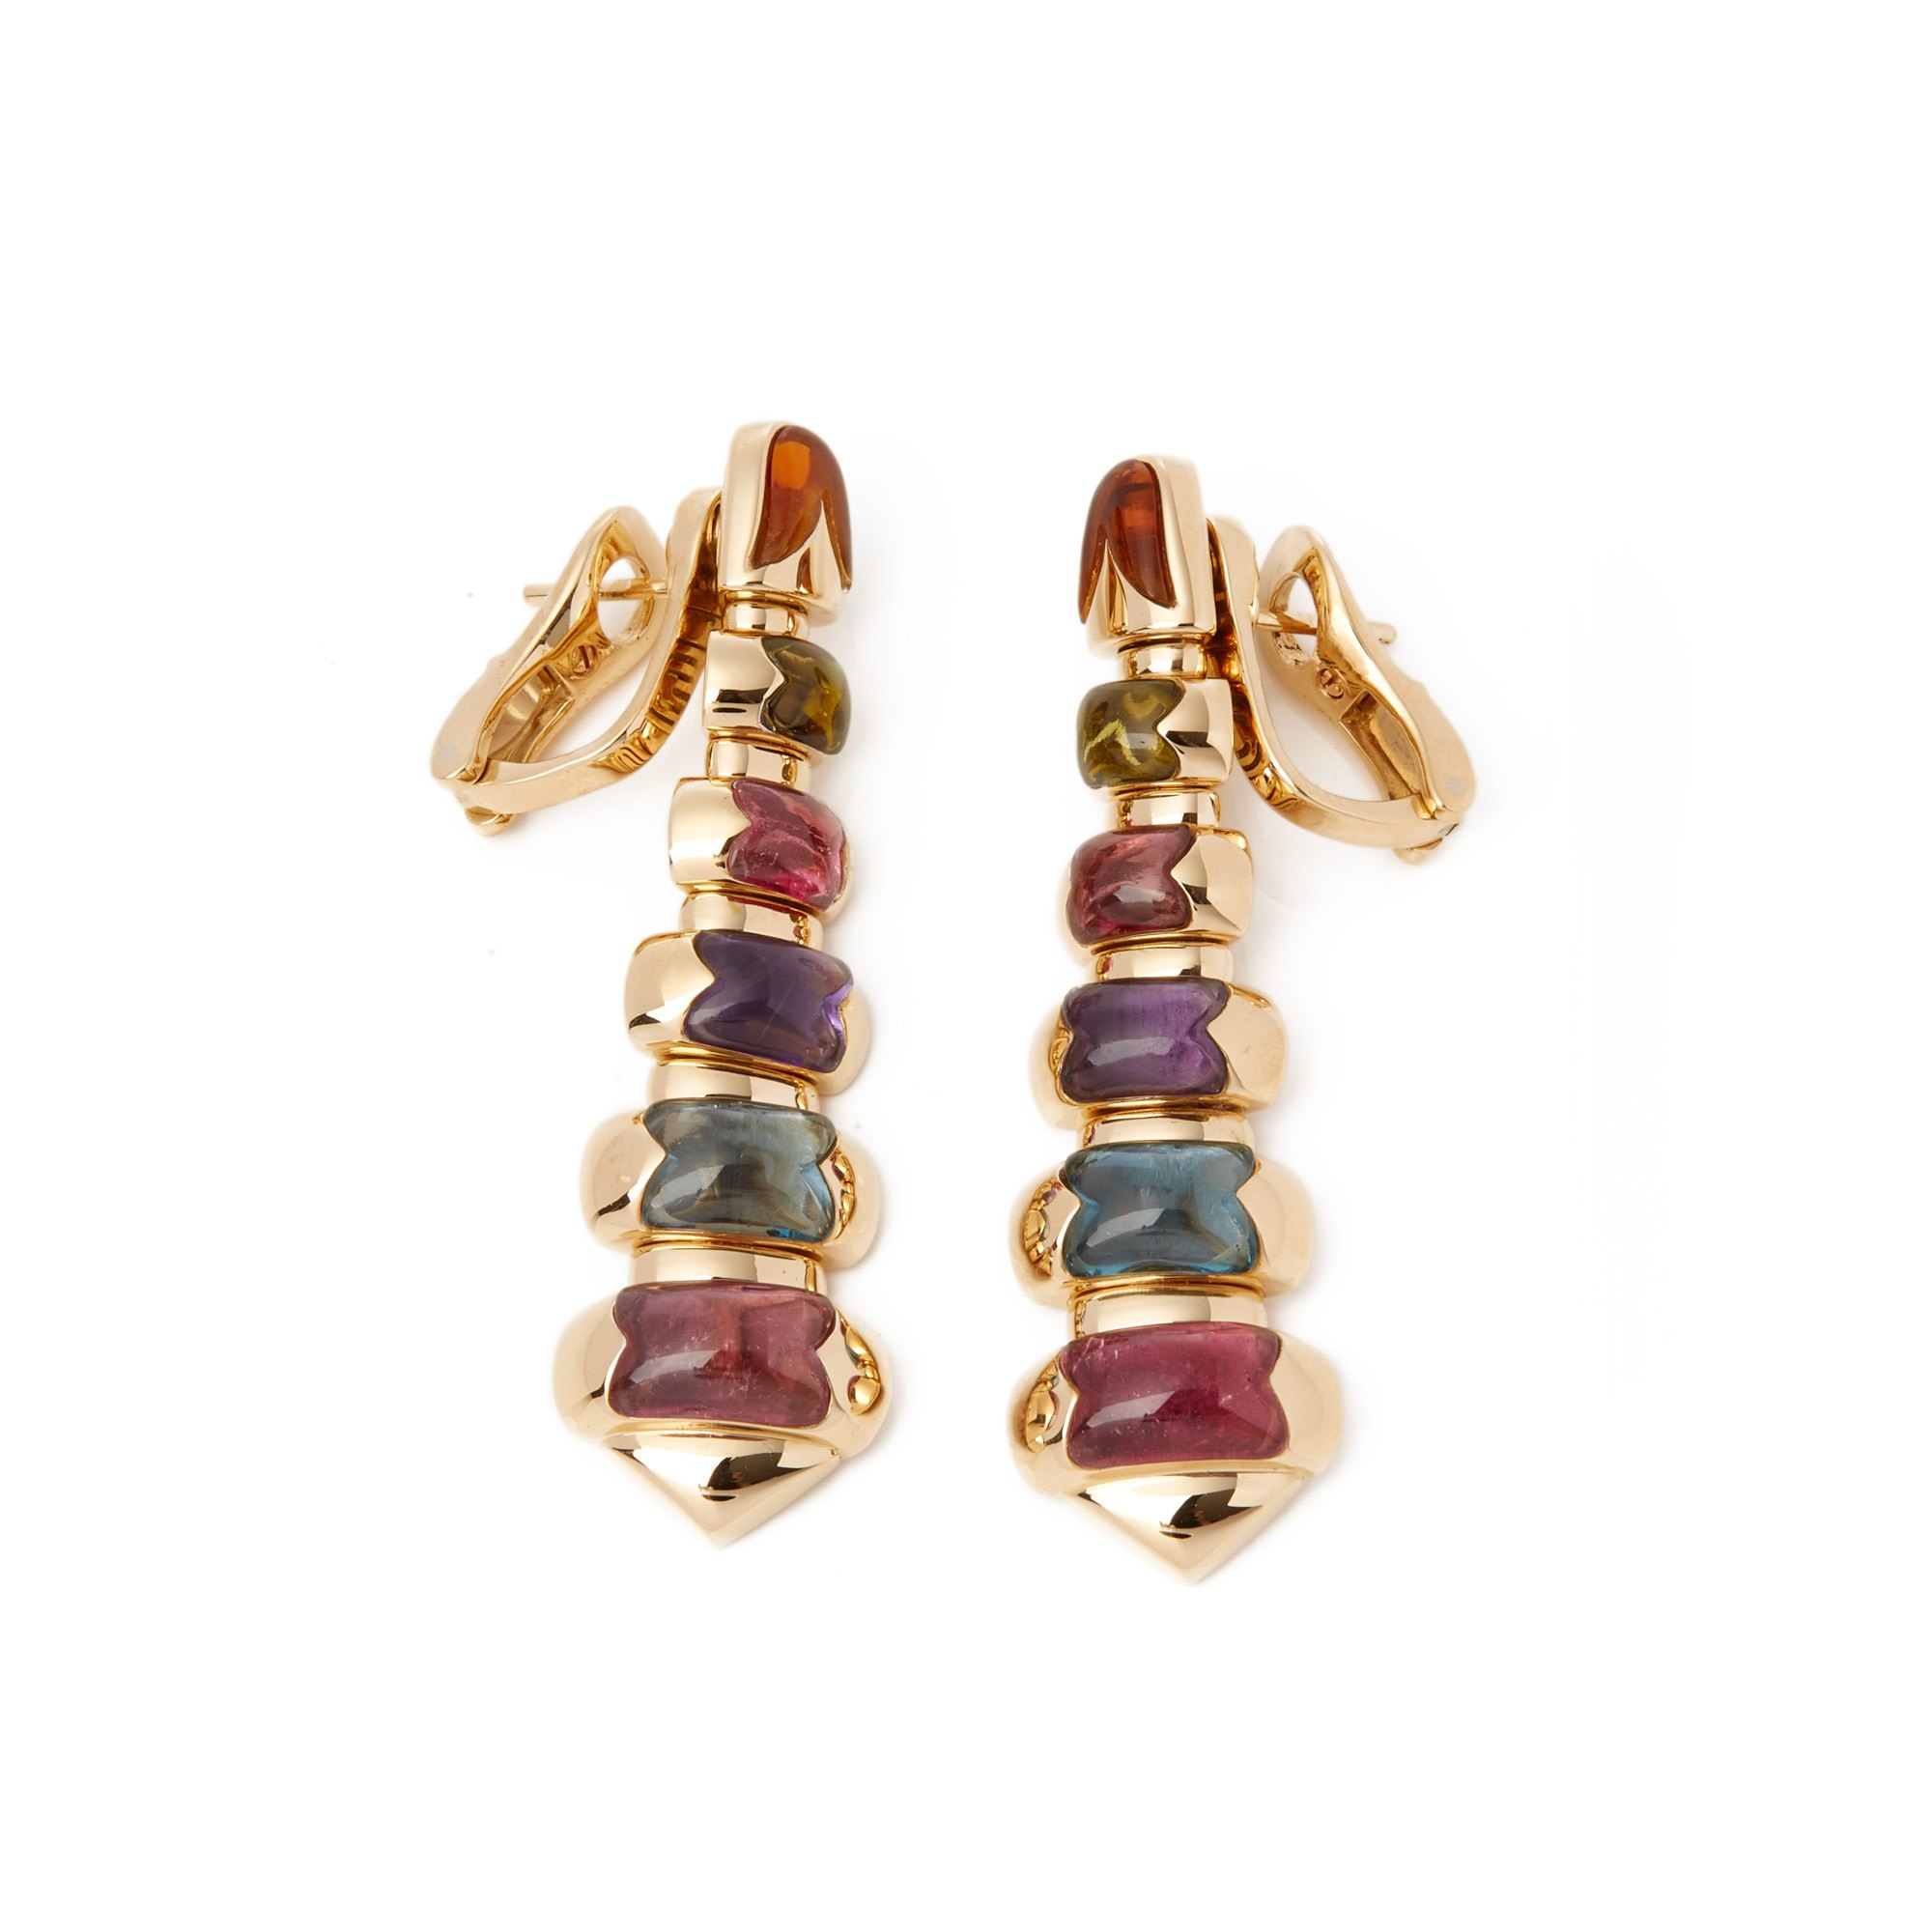 Bulgari 18k Yellow Gold Graduated Mixed Stone Drop Earrings